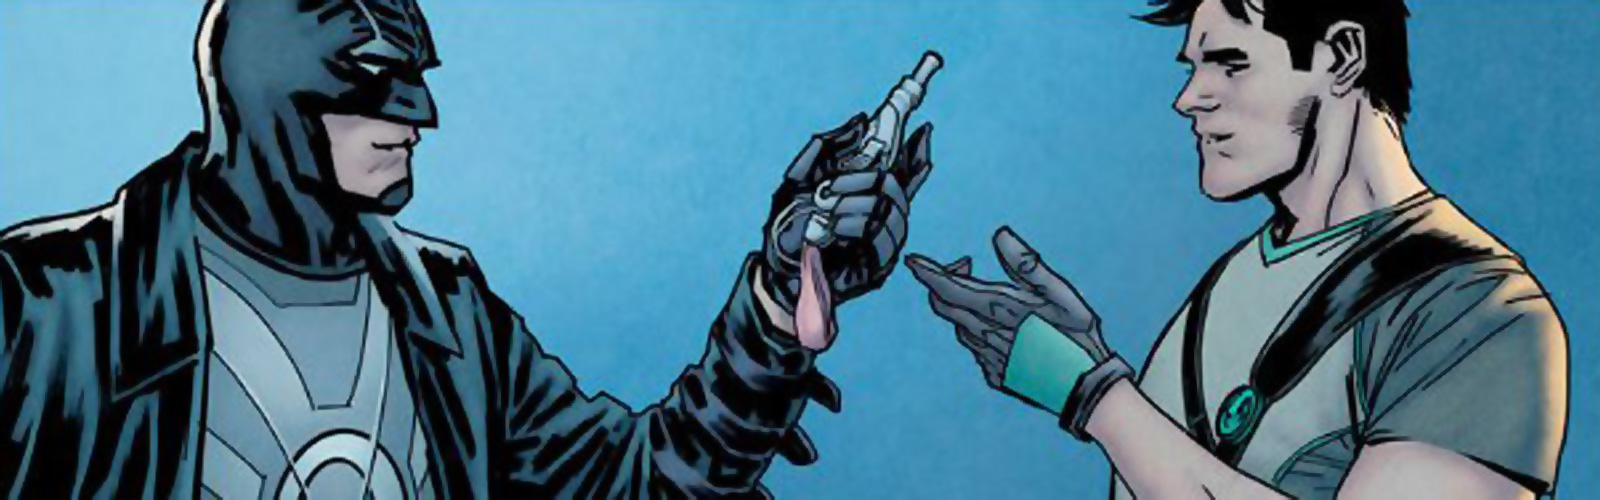 New Releases - 13-07-16, featuring NIGHTWING: REBIRTH #1